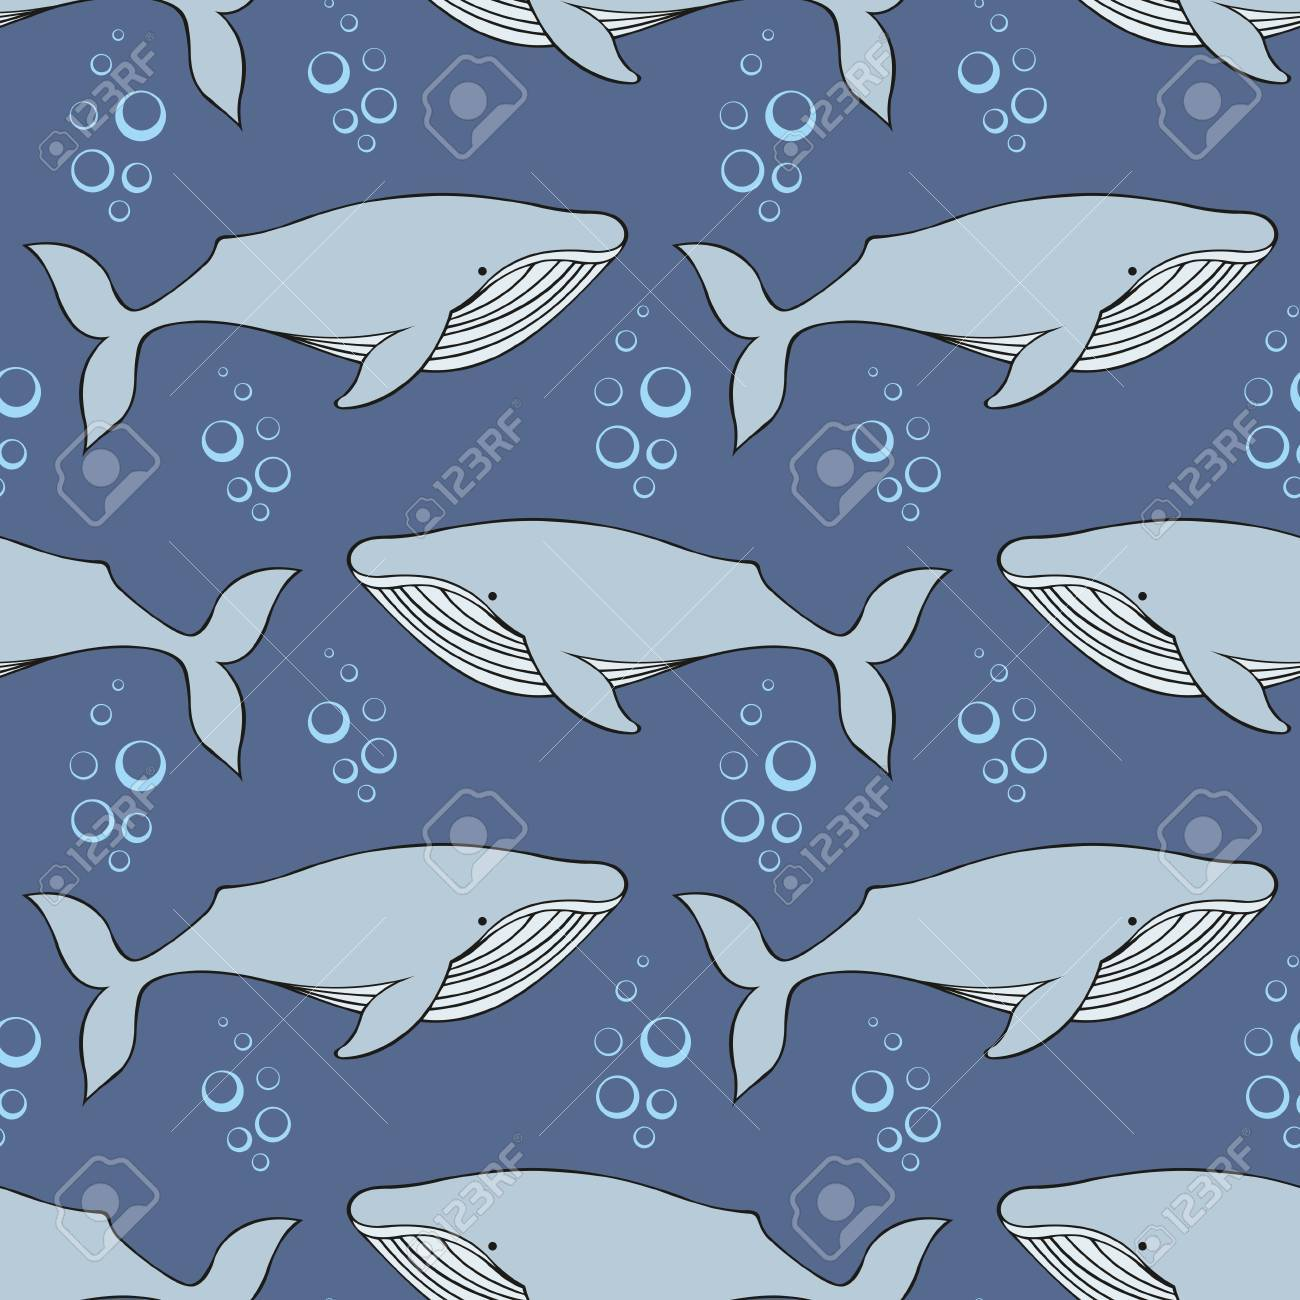 Whales Vector Seamless Pattern In The Style Of The Cartoon